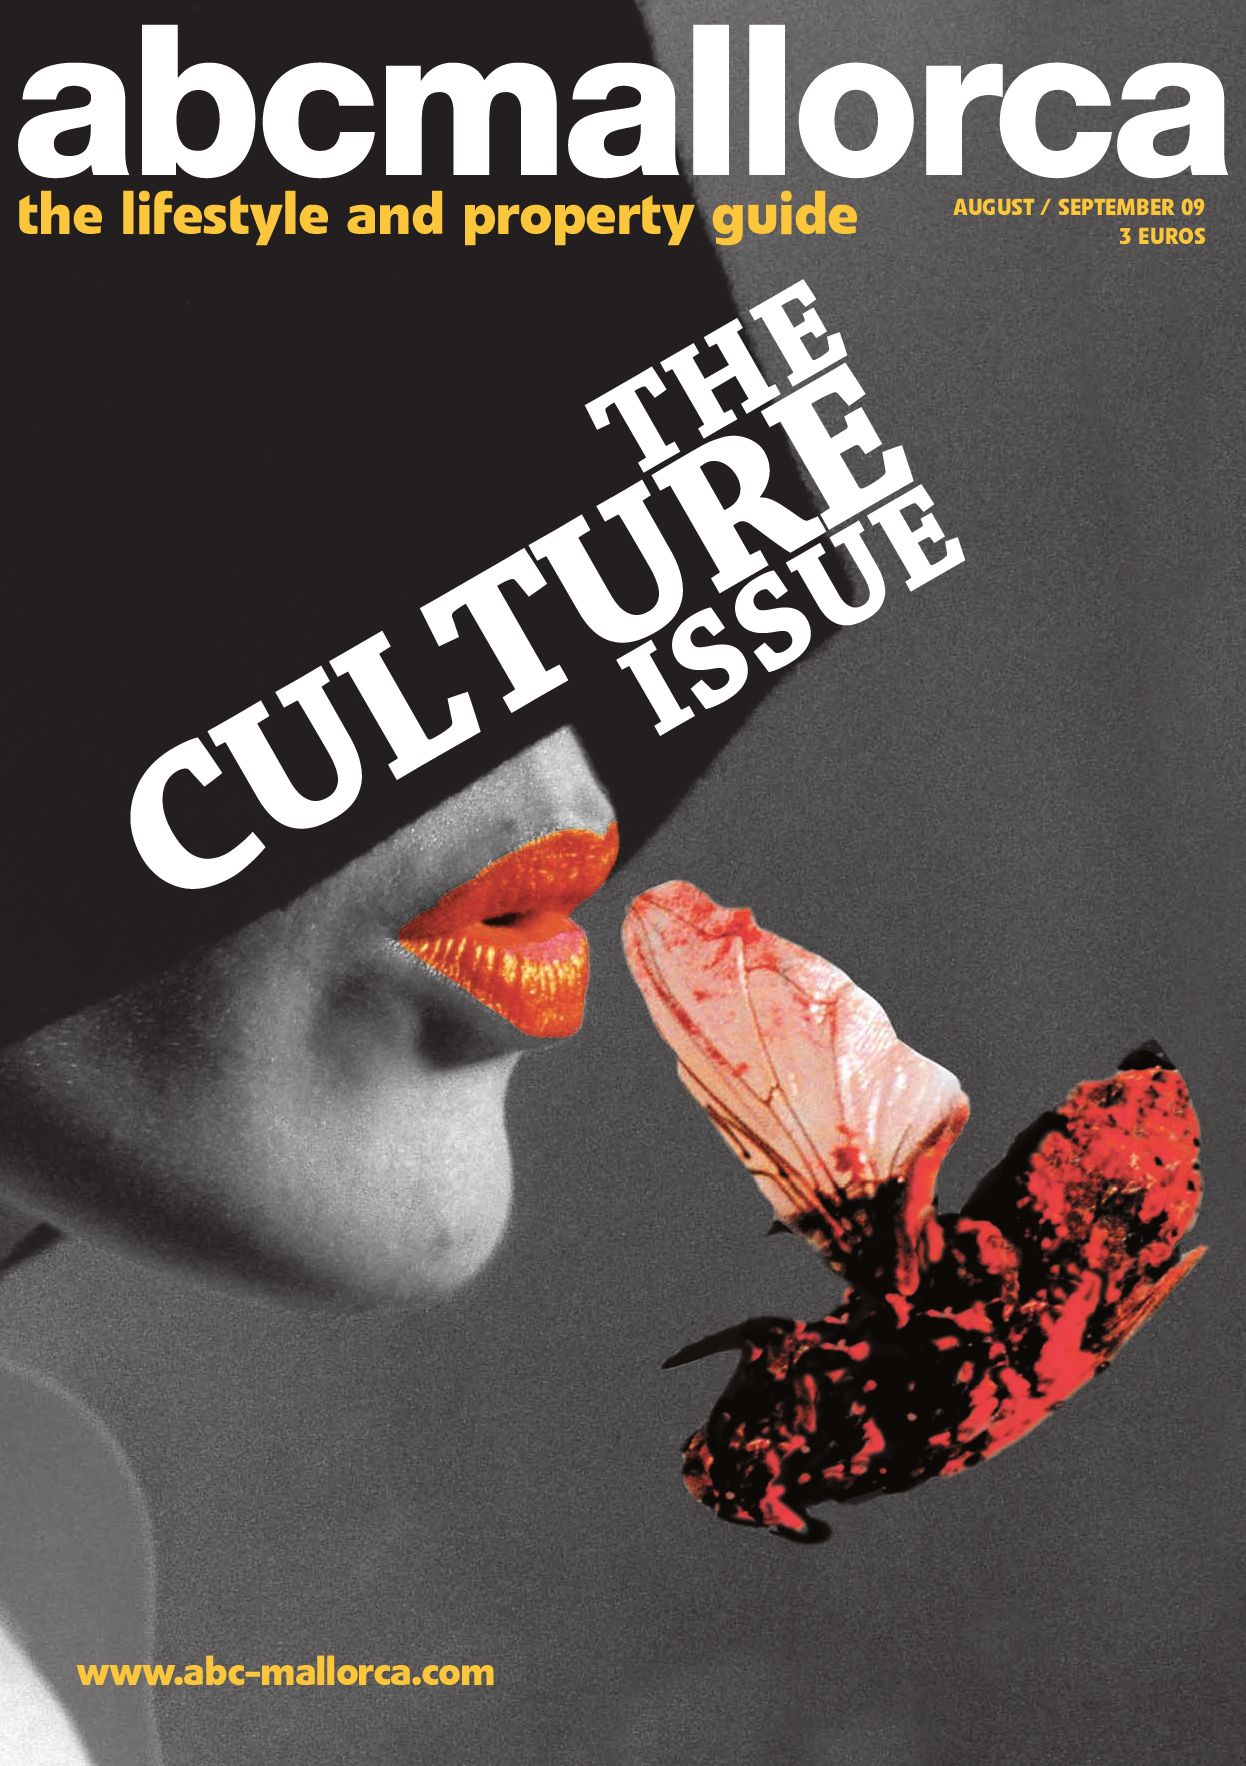 abcMallorca - The Culture Issue by abcMallorca - issuu